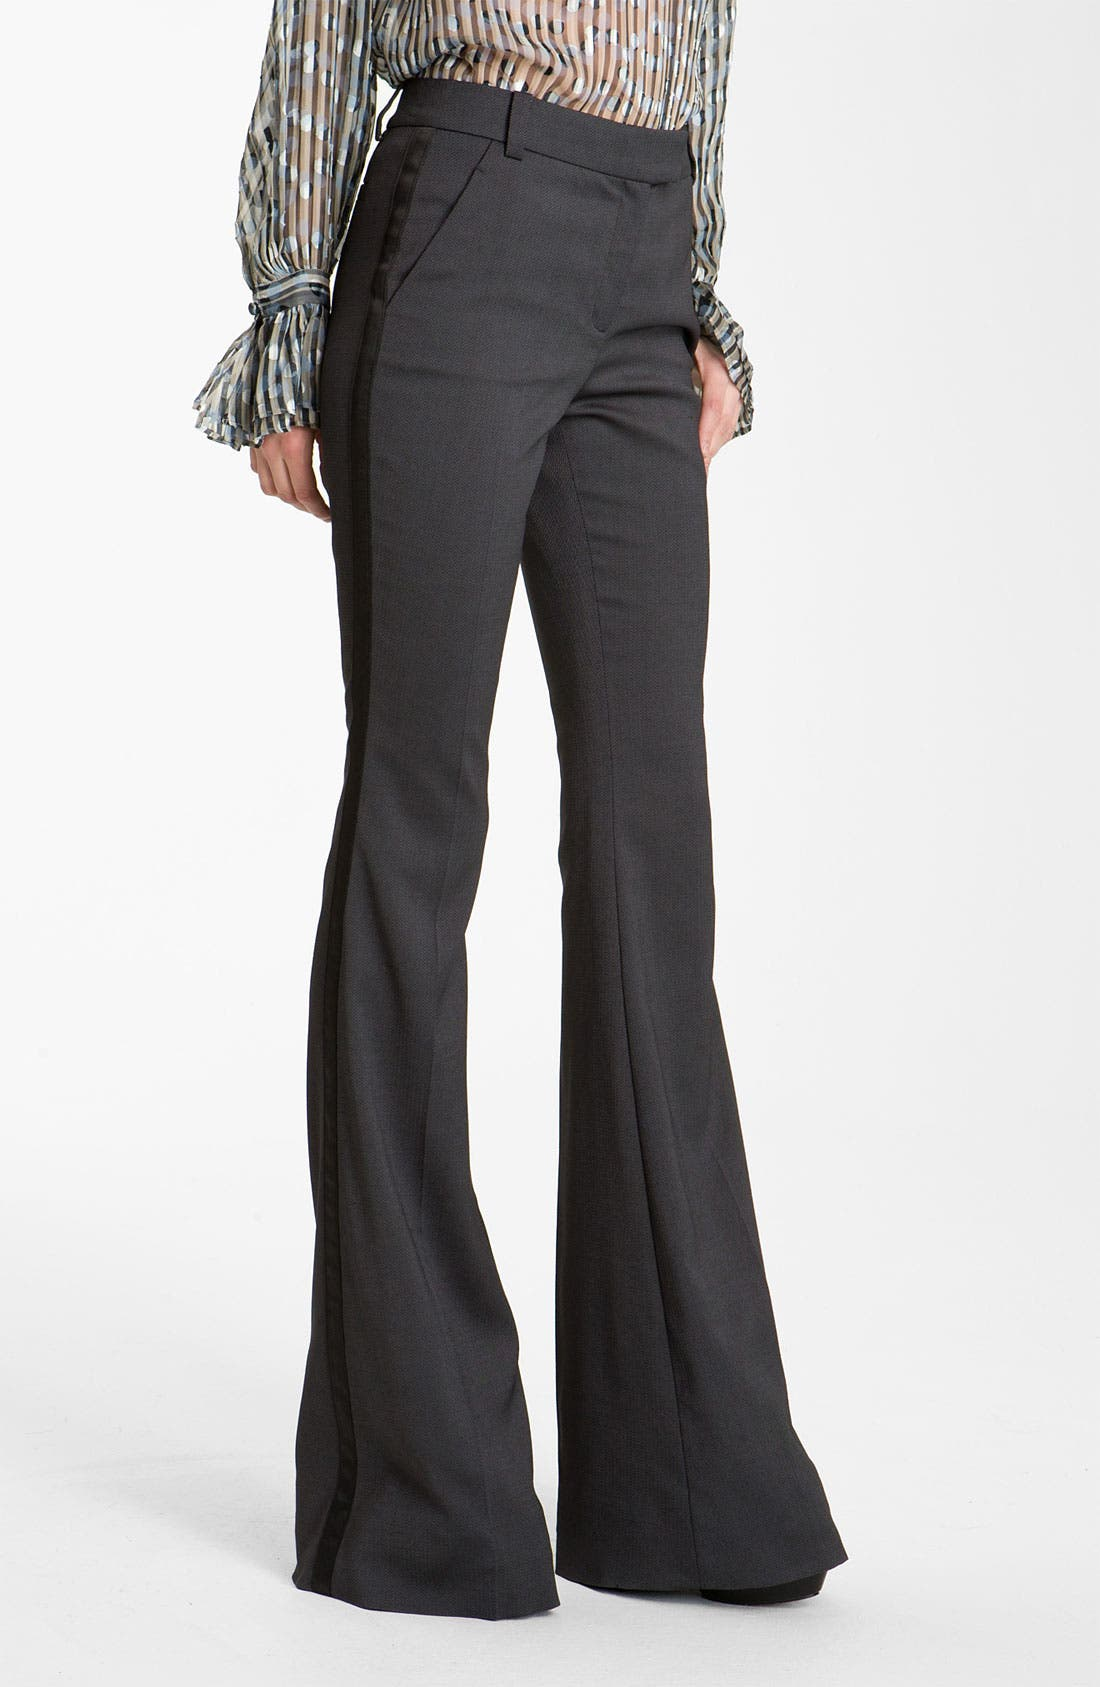 Main Image - Rachel Zoe 'Hutton' Flare Leg Pants (Long)